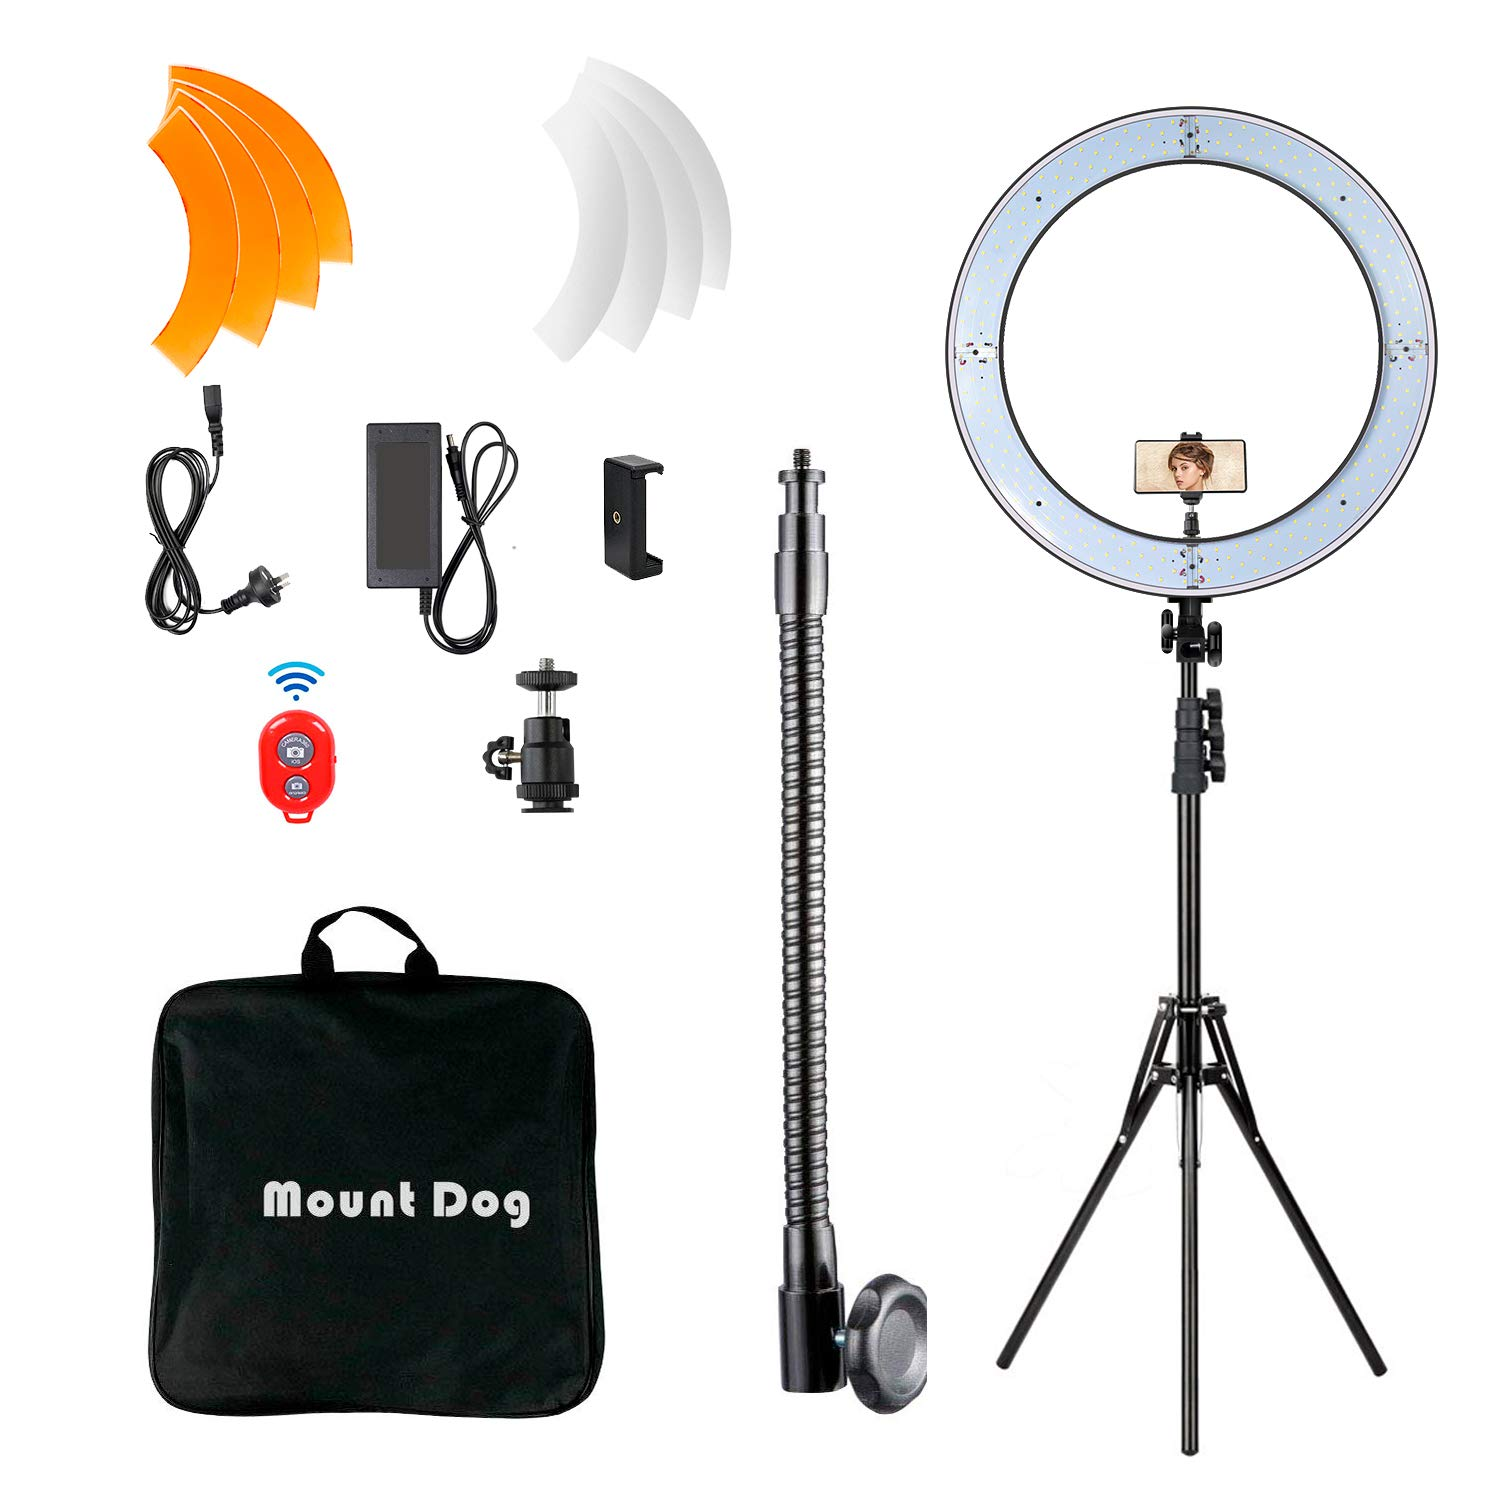 MOUNTDOG 18'' Ring Light Kit 55W Bluetooth LED Ringlight Lighting with Tripod Stand Dimmable 3200K/5500K YouTube Circle Lighting Ringlights for Makeup Video Photography Blogging Portrait